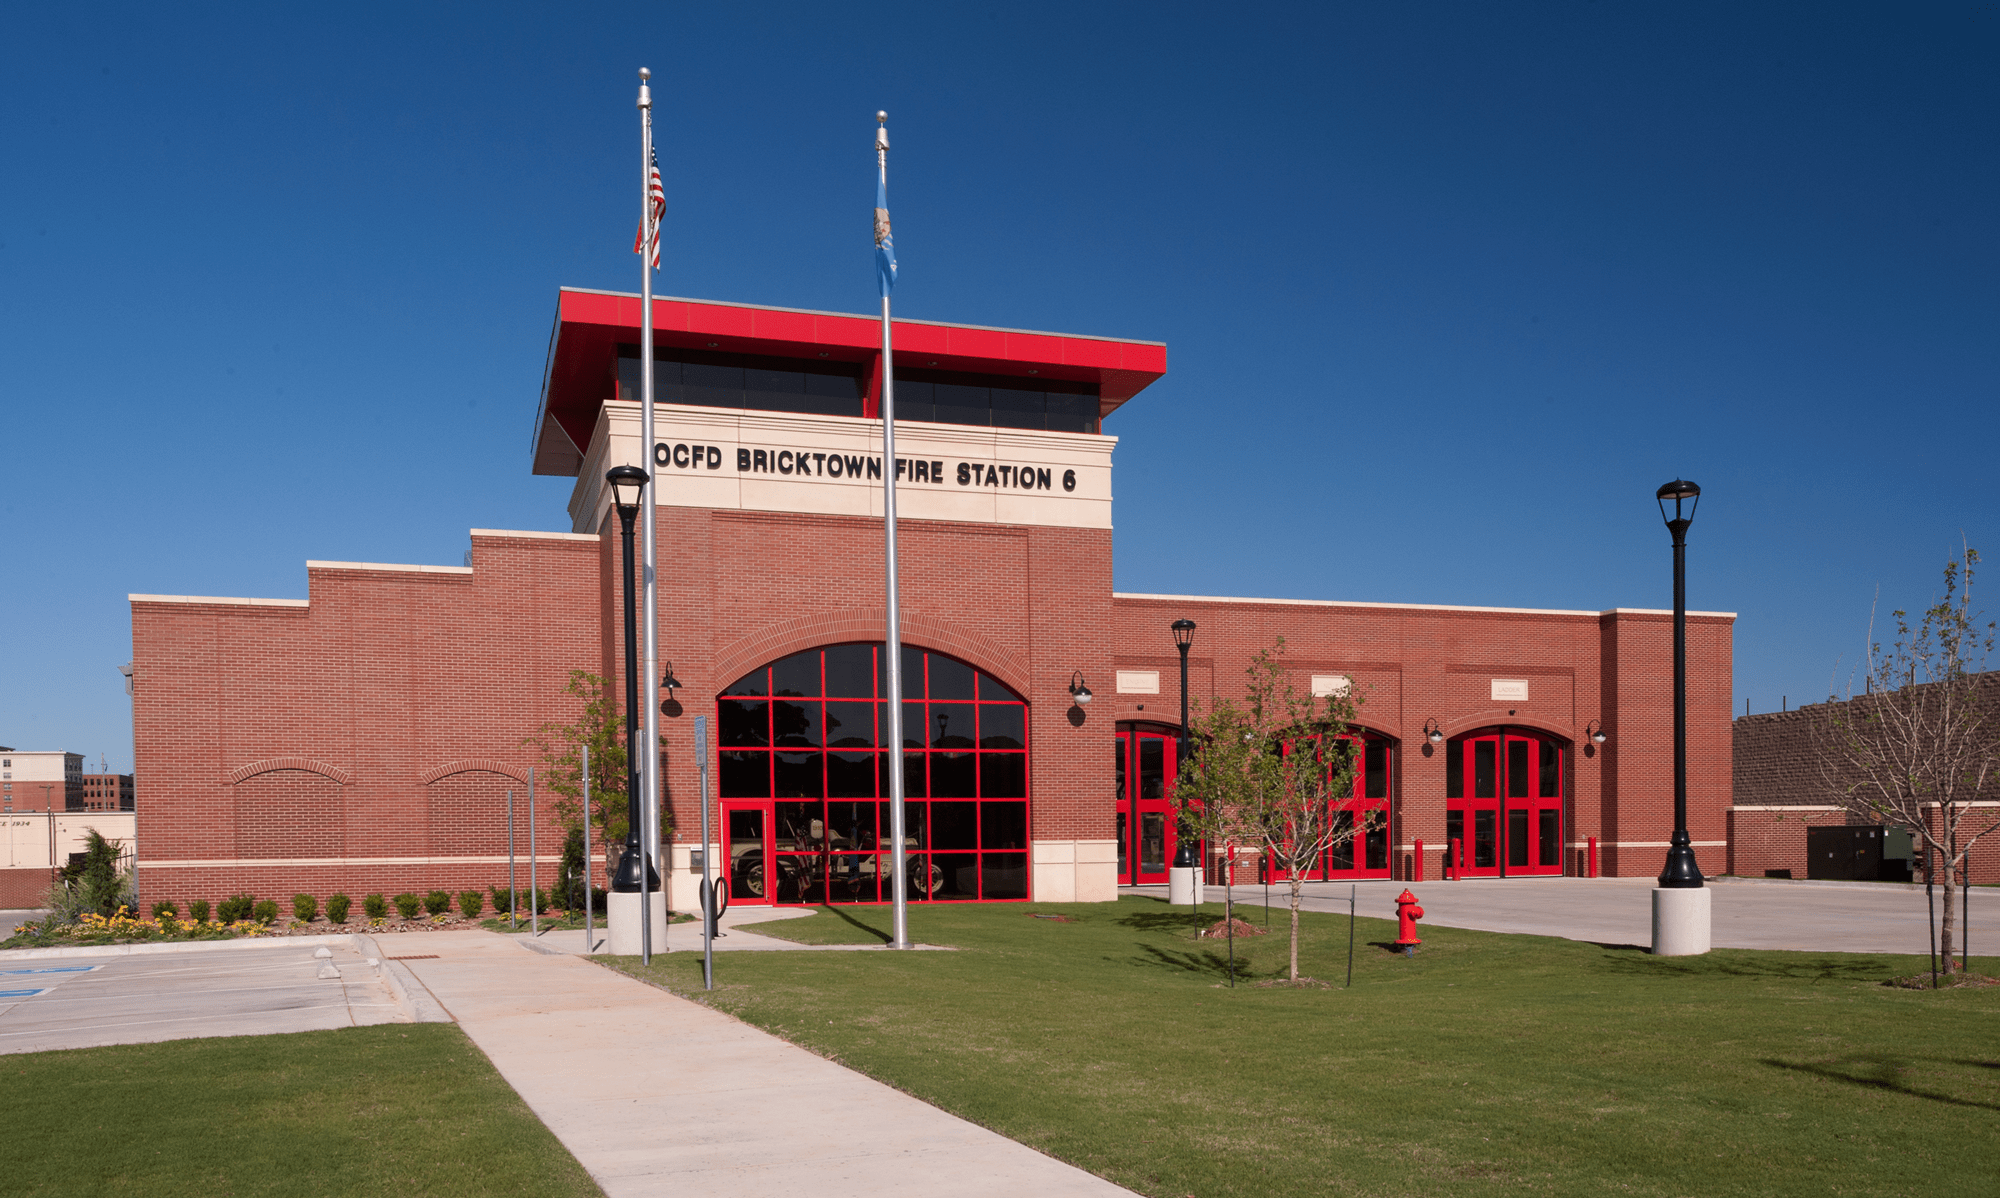 Bricktown Firestation